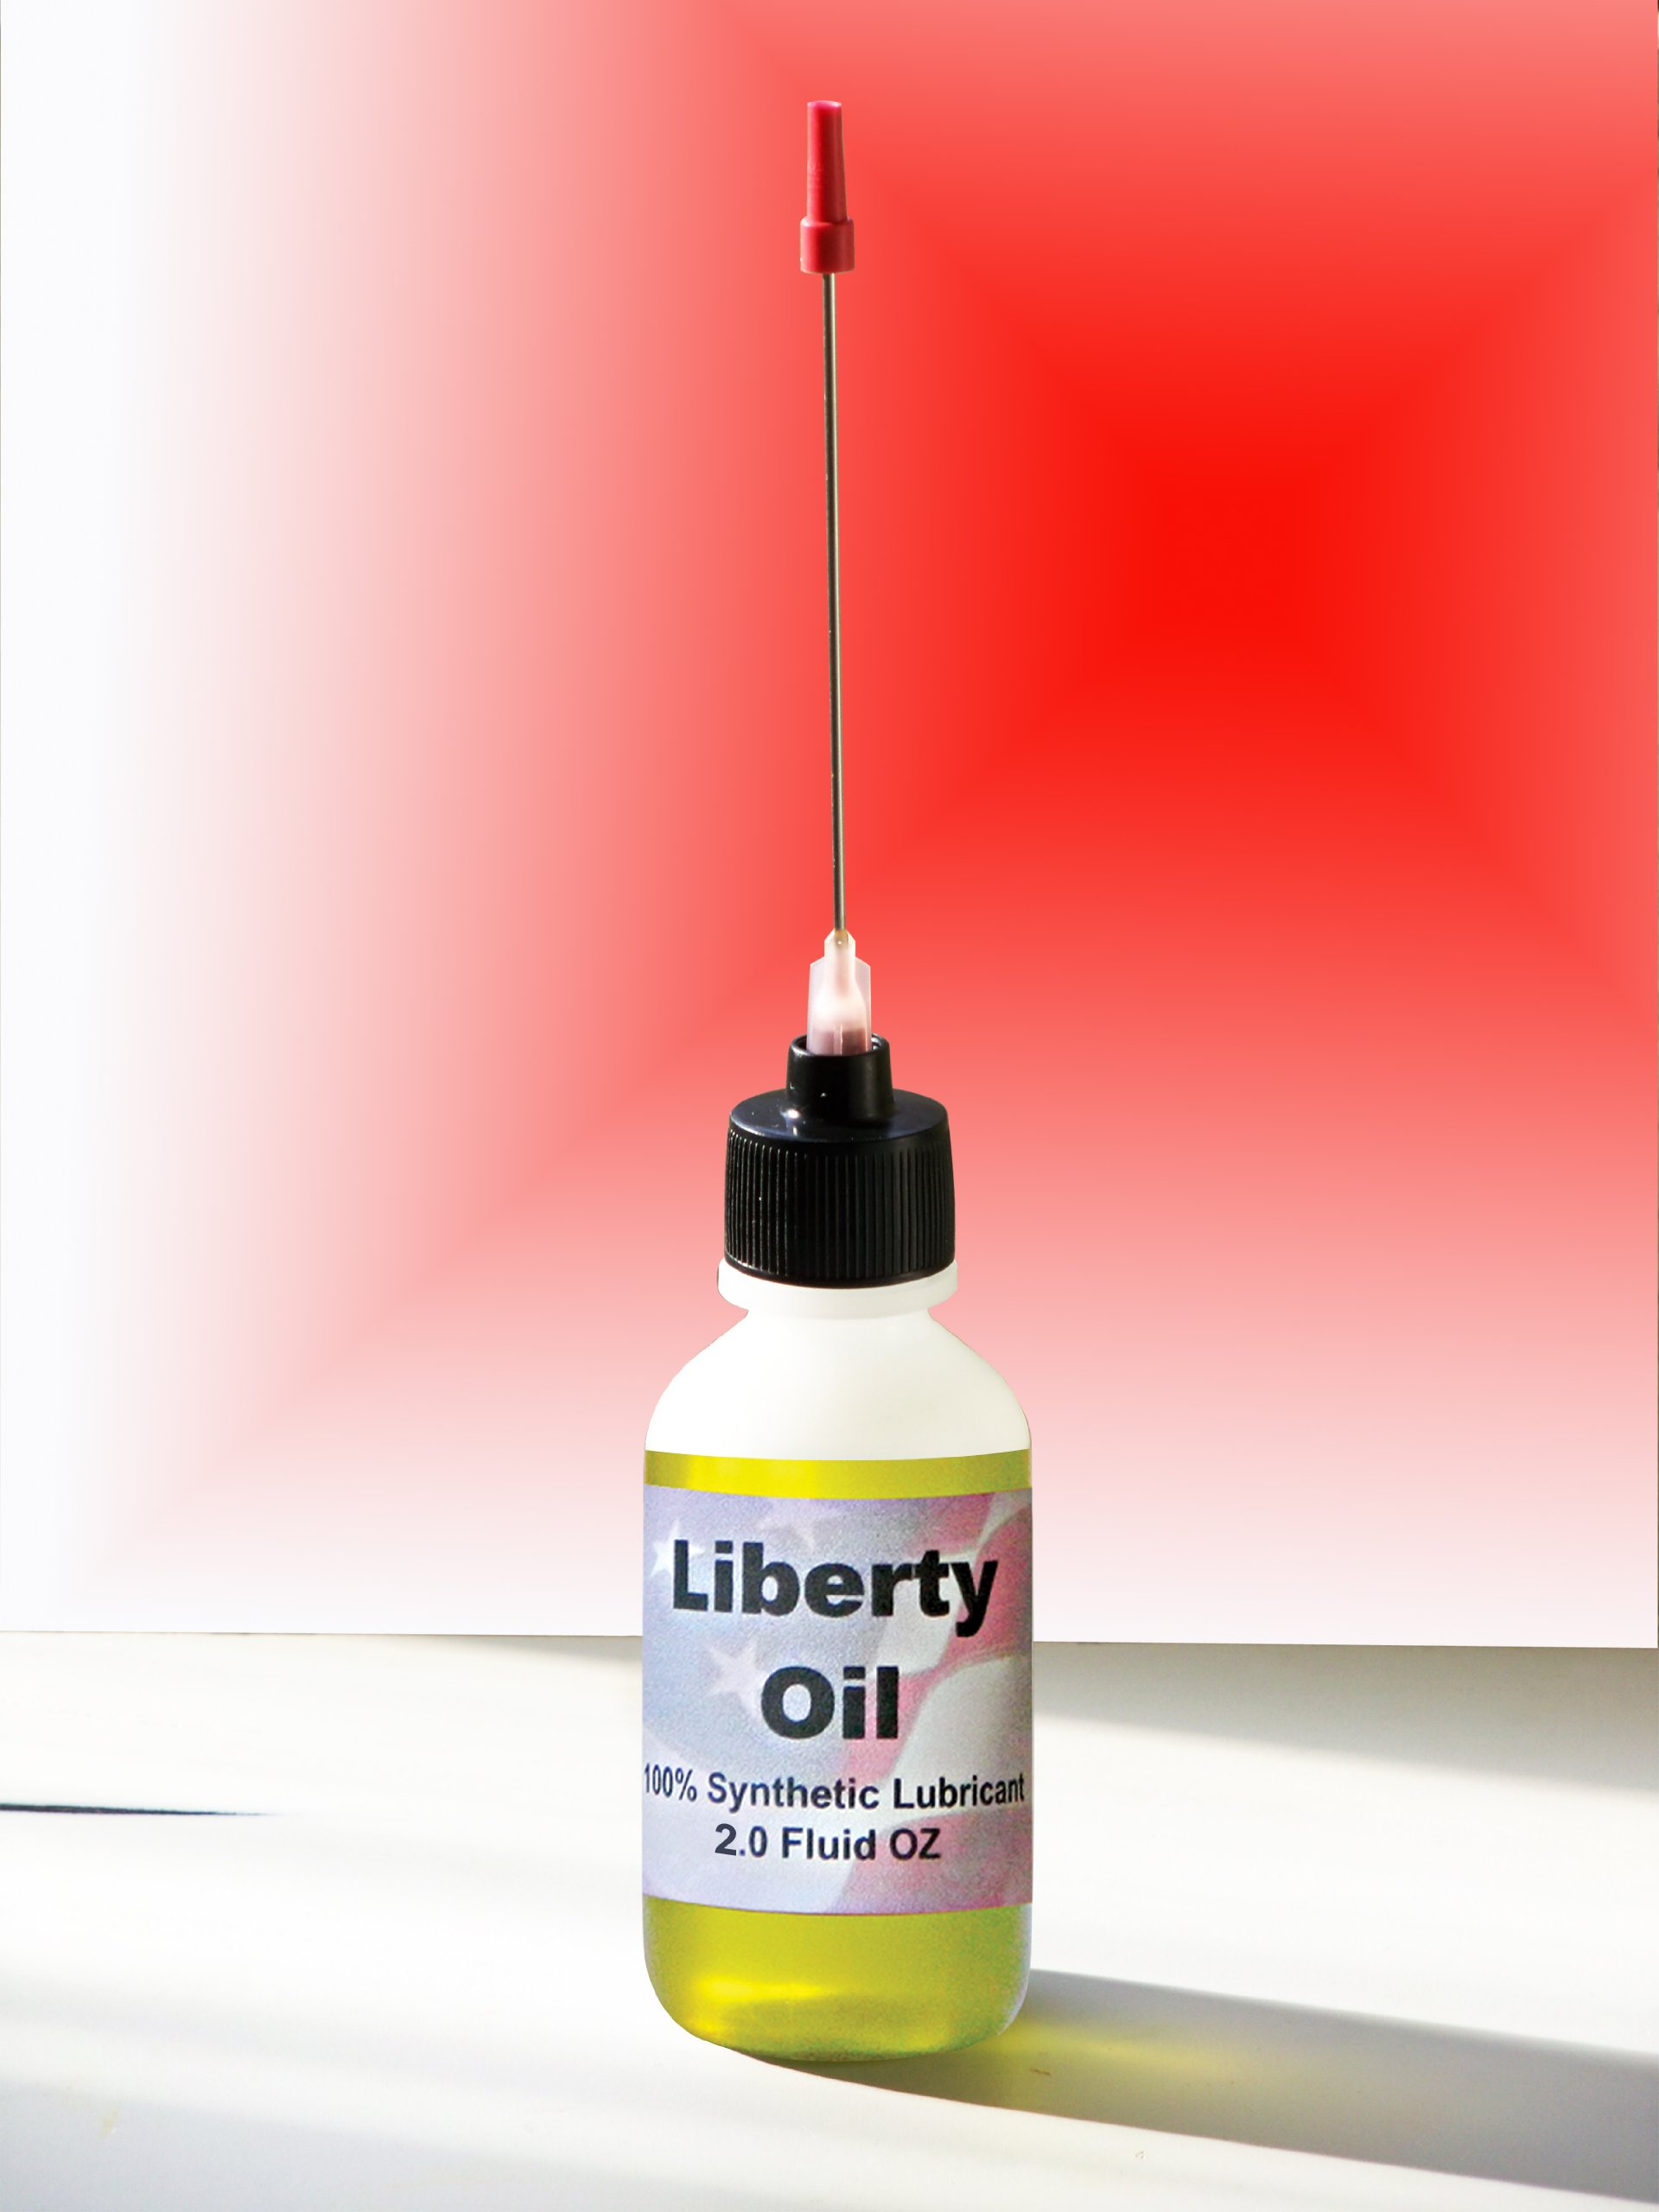 Liberty Oil, 2oz Bottle of the Best 100% Synthetic Oil for Lubricating Folding and Fixed Knives. Protects, Cleans, and Lubricates!!!